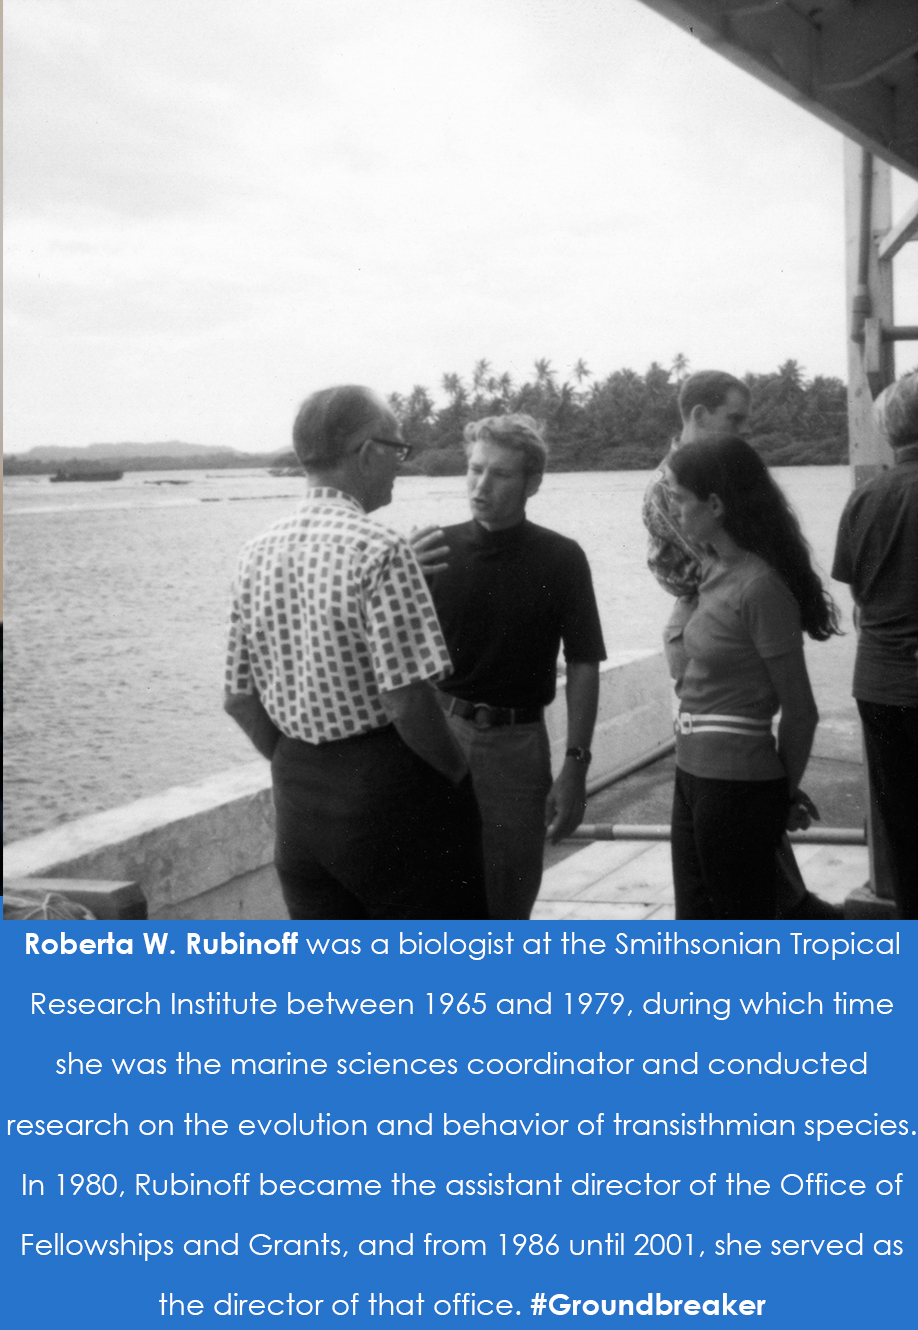 Photograph of two men and one woman standing in a group. The caption reads: Roberta W. Rubinoff was